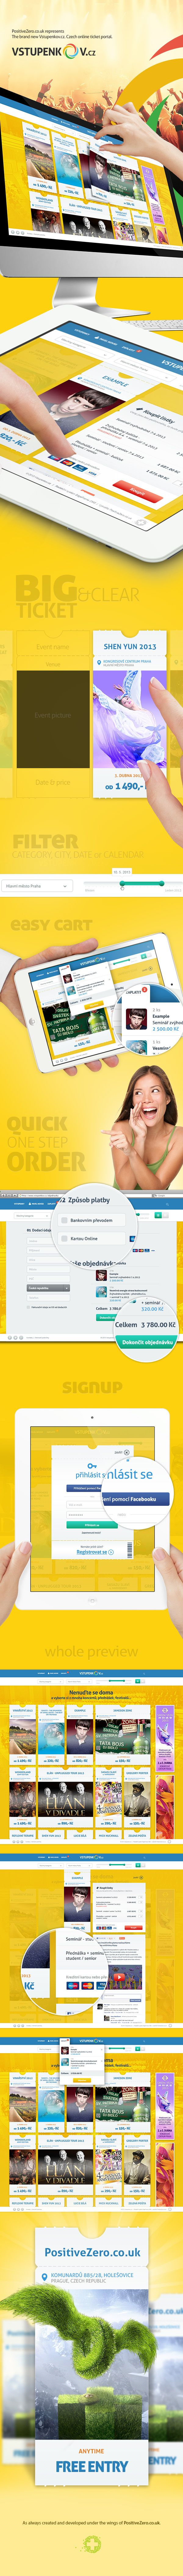 Vstupenkov.cz - Czech online ticket portal. by PositiveZero.co.uk , via Behance